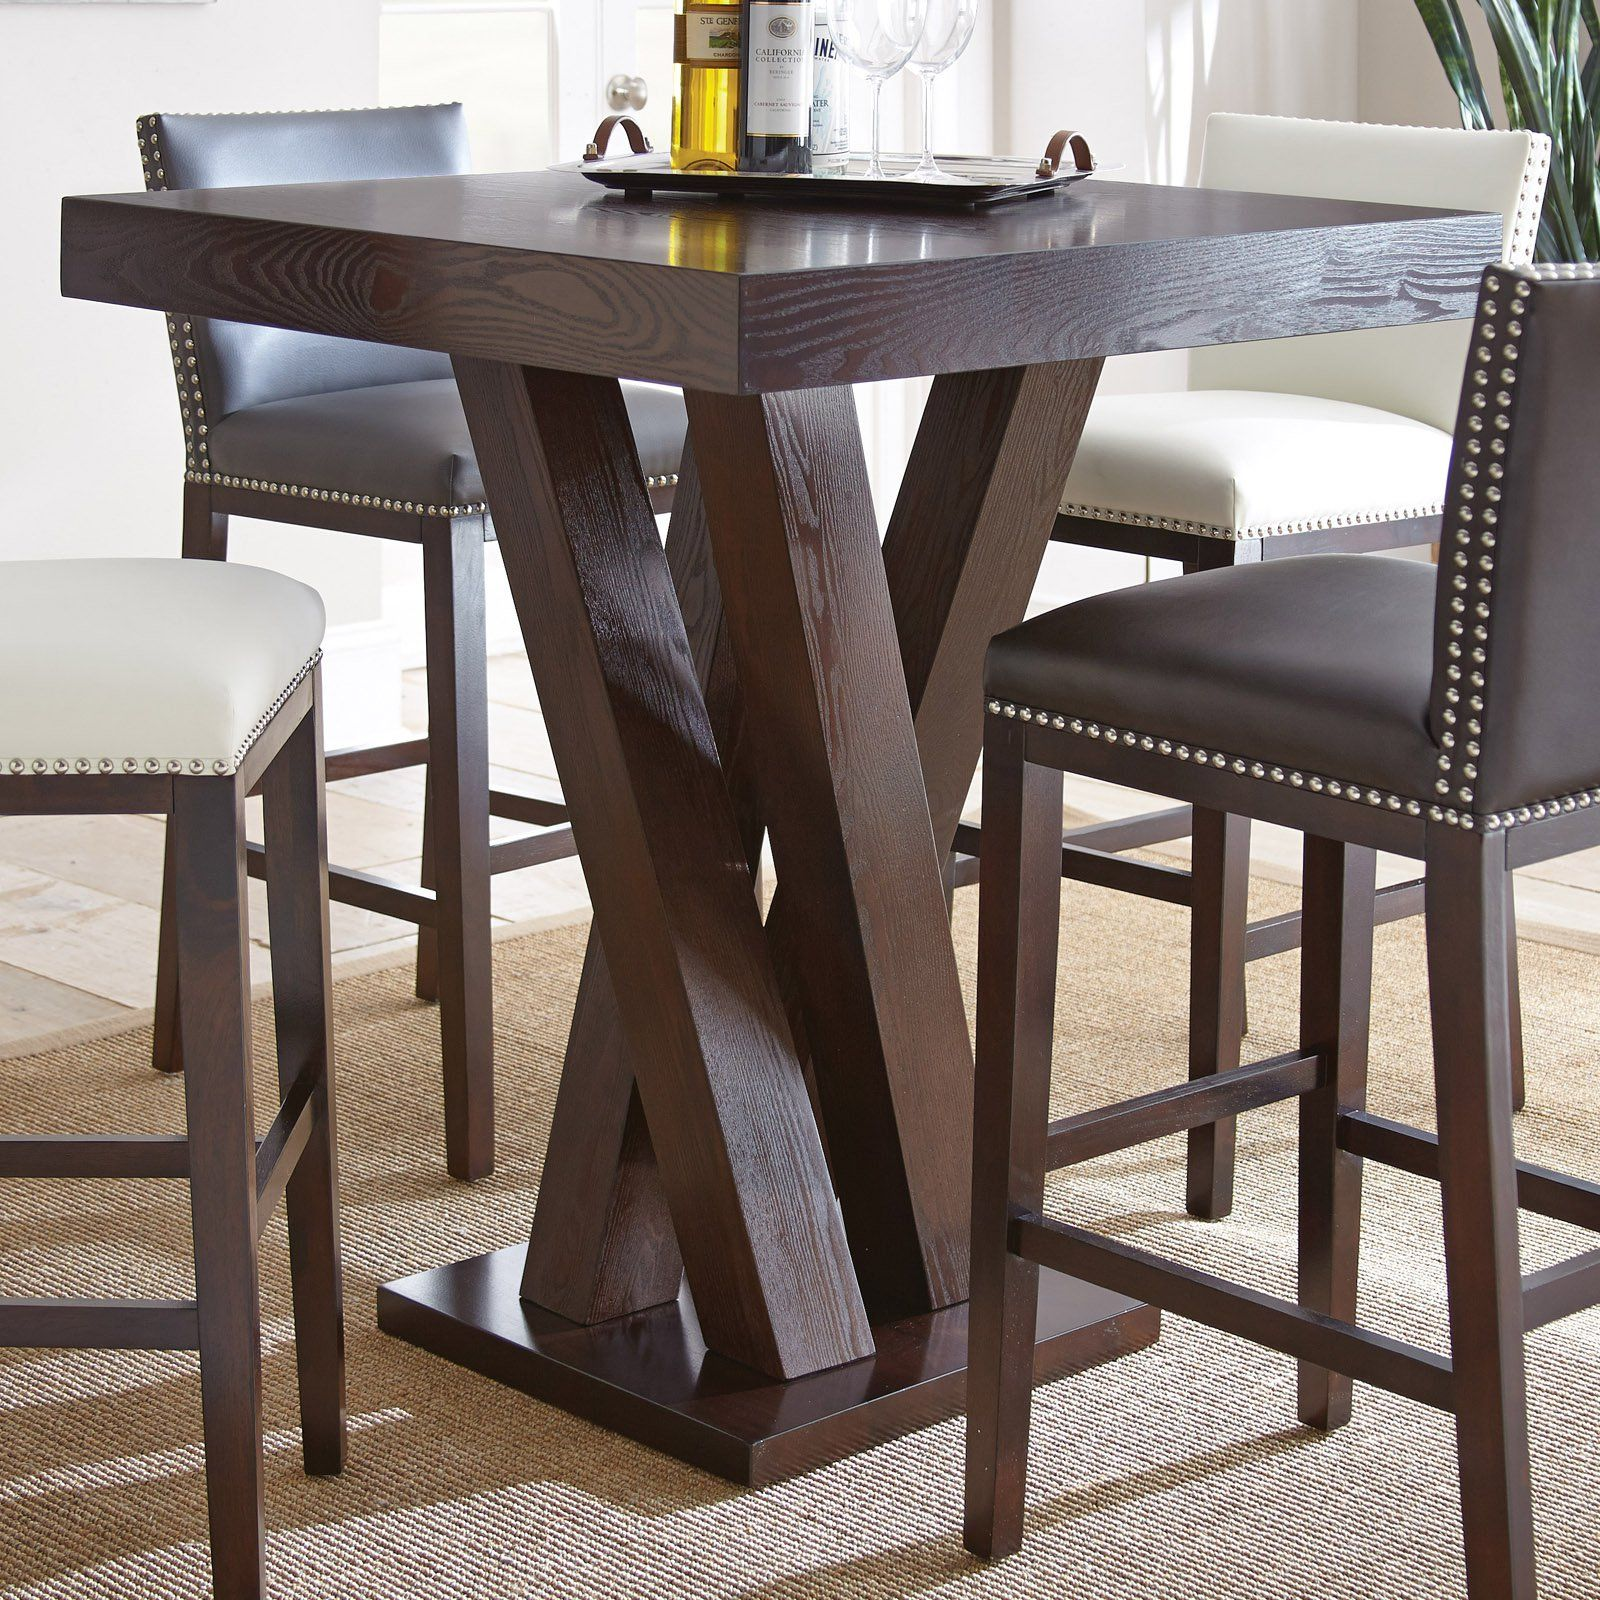 Steve Silver Tiffany Square Bar Height Table | from hayneedle.com & Steve Silver Tiffany Square Bar Height Table | from hayneedle.com ...